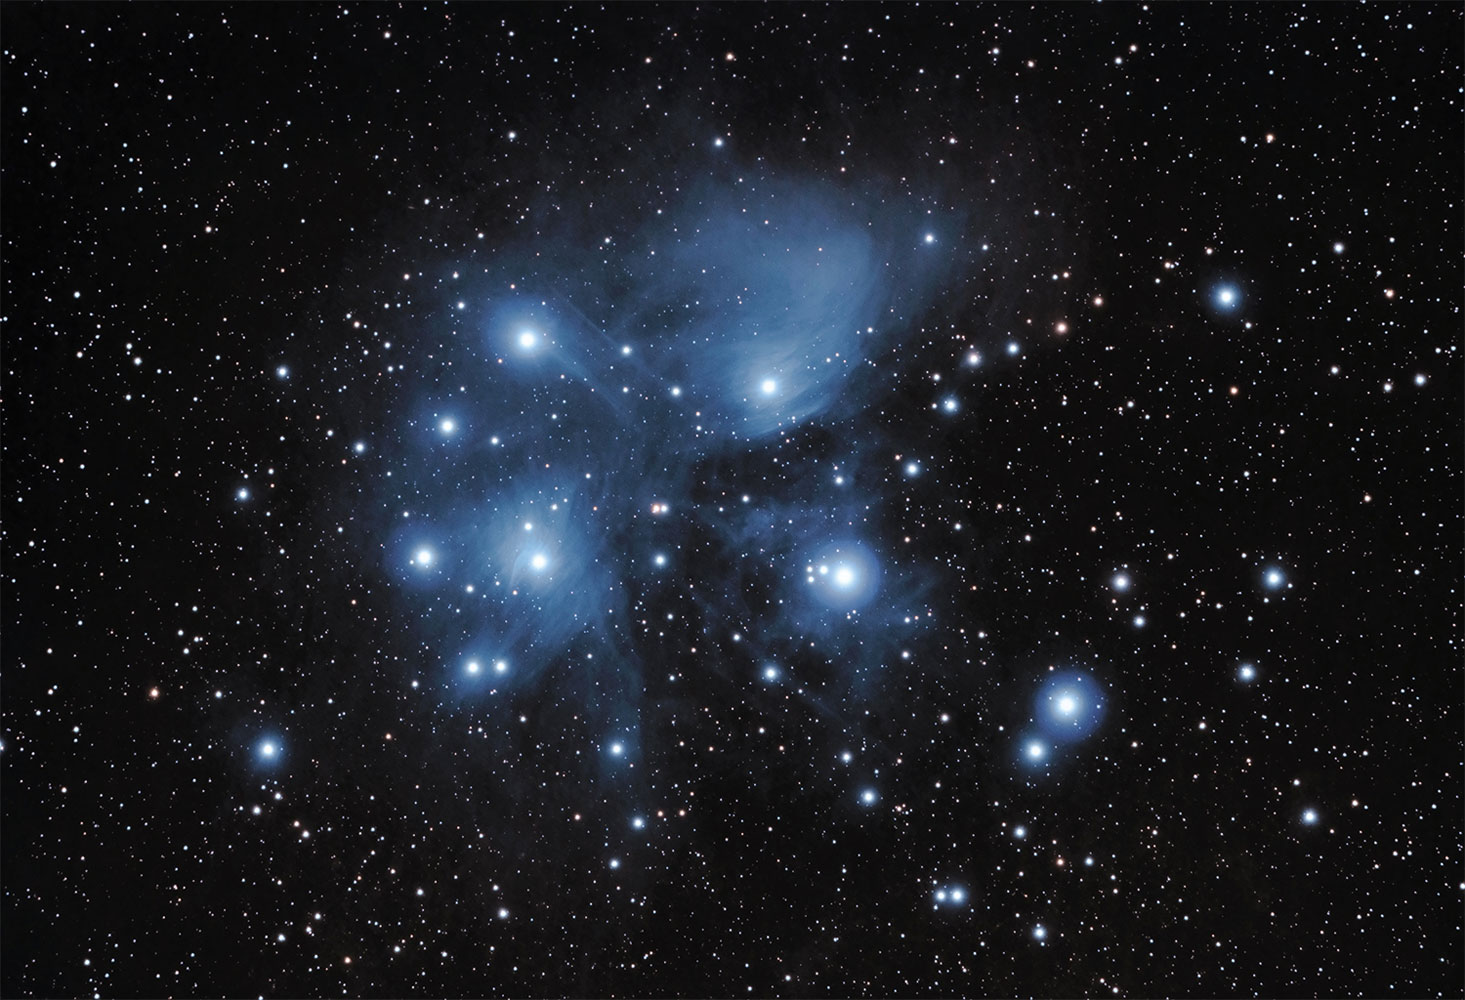 The Pleiades, also known as M45 or the Seven Sisters, imaged from Fayetteville, Ark., on Jan. 25, 2014.